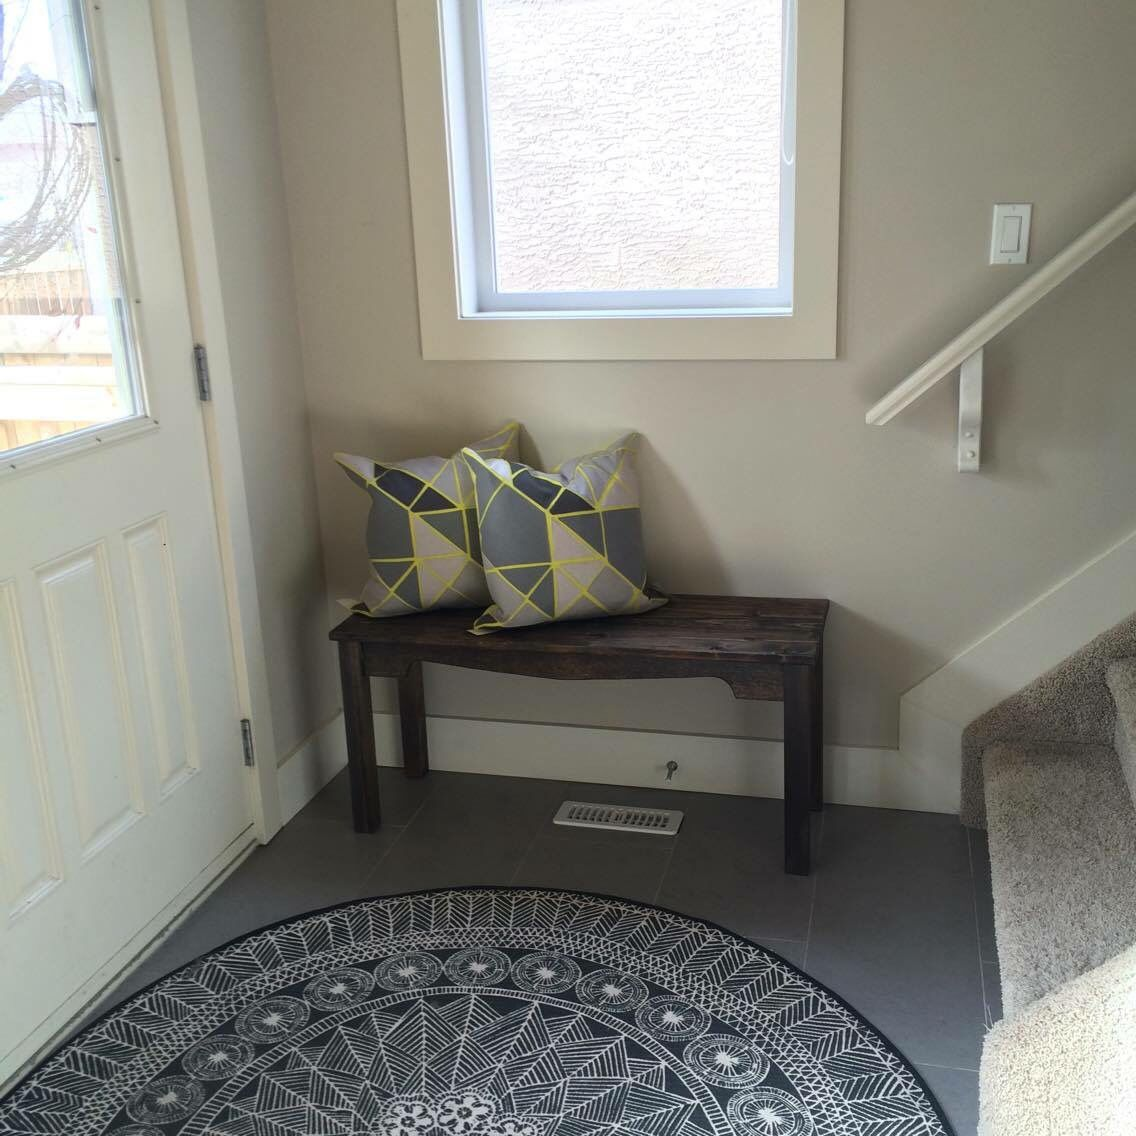 This handmade bench looks perfect in its new entryway :)  ~The Decor Vault~ www.facebook.com/thedecorvault